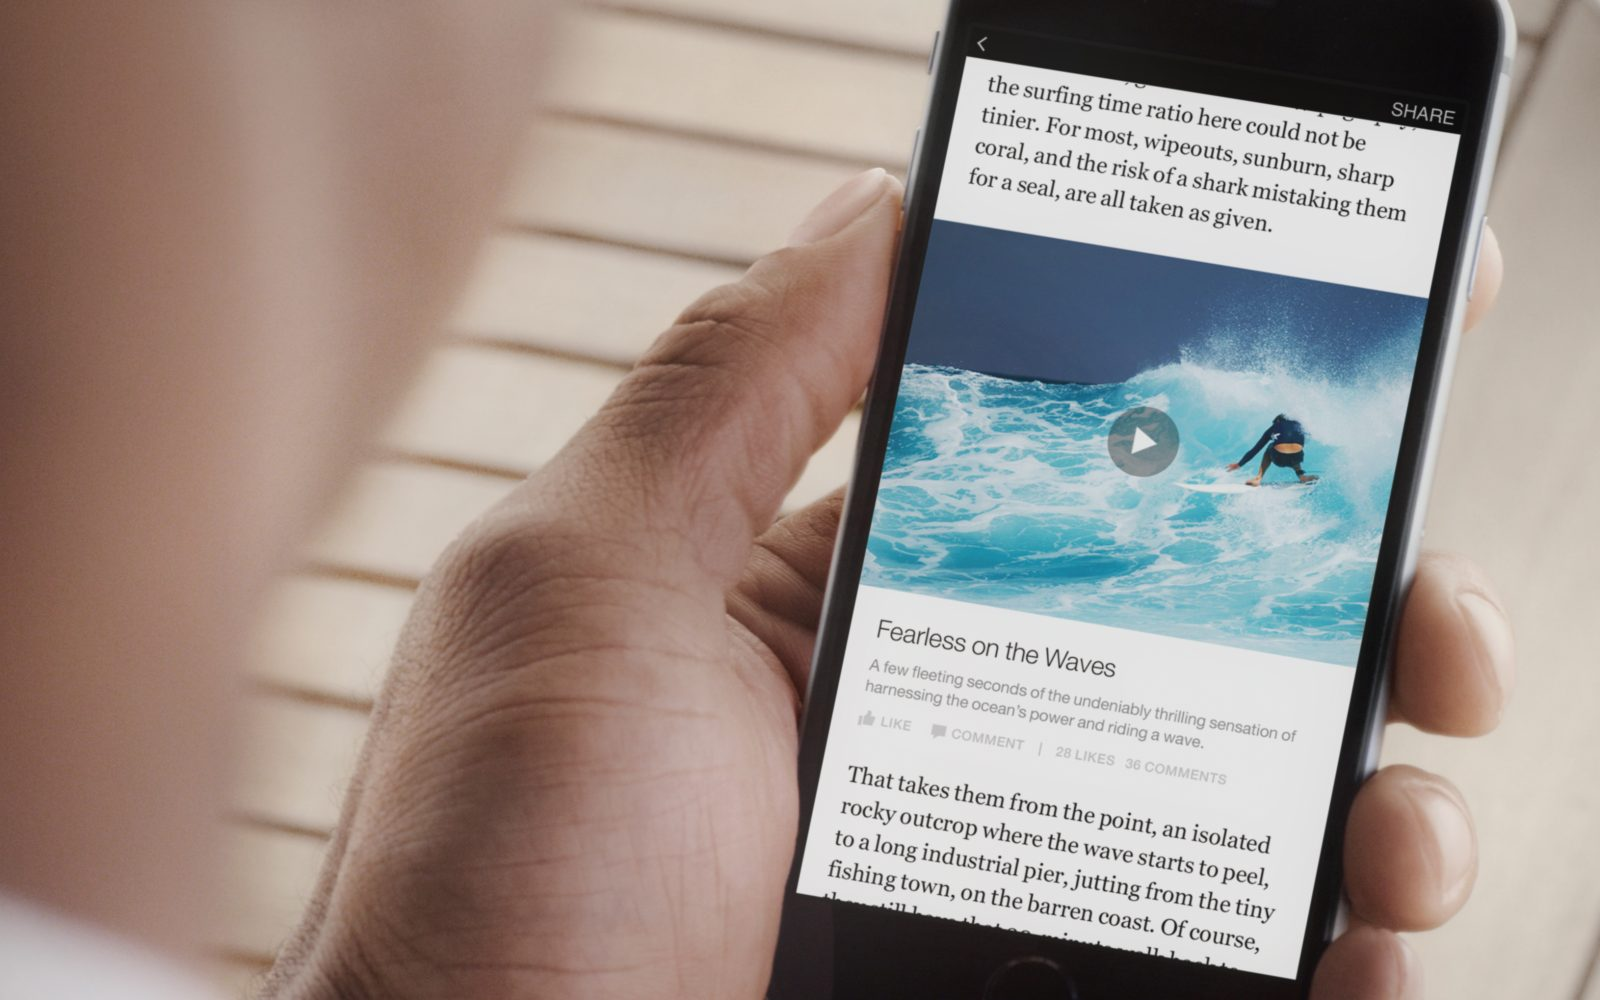 Facebook launches new 'Instant Articles' feature in iPhone